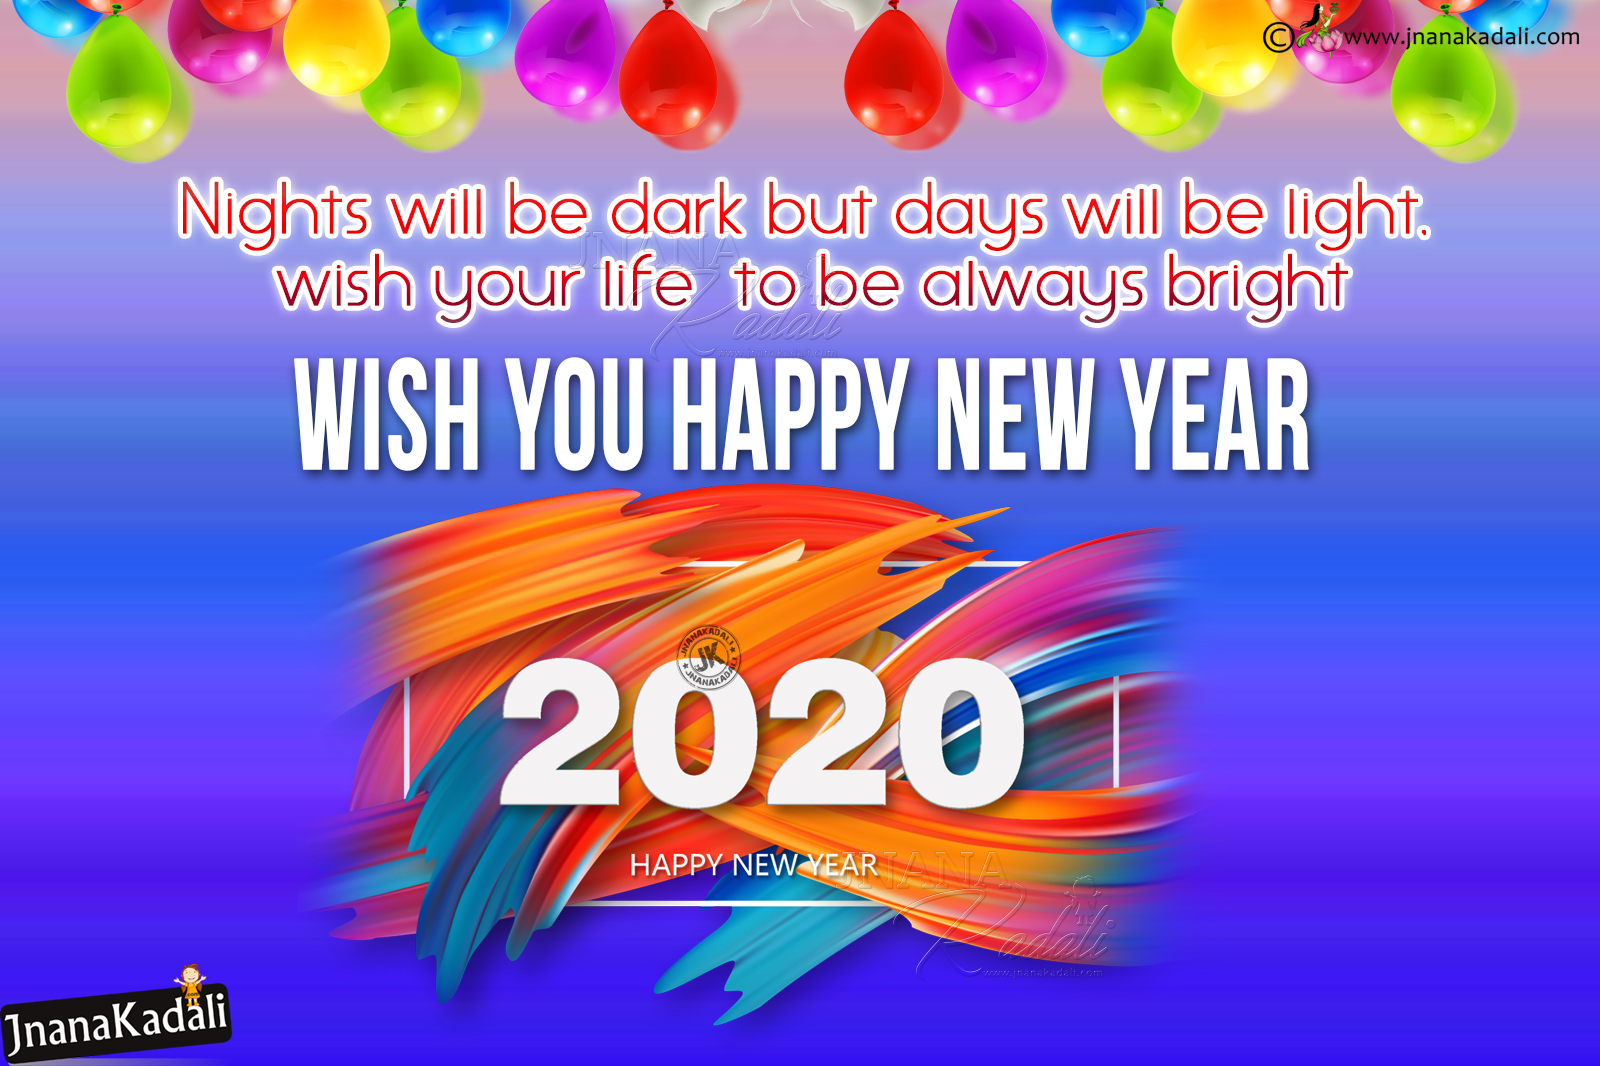 happy new year 2020 greetings wallpapers in english happy new year quotes in english free download jnana kadali com telugu quotes english quotes hindi quotes tamil quotes dharmasandehalu year 2020 greetings wallpapers